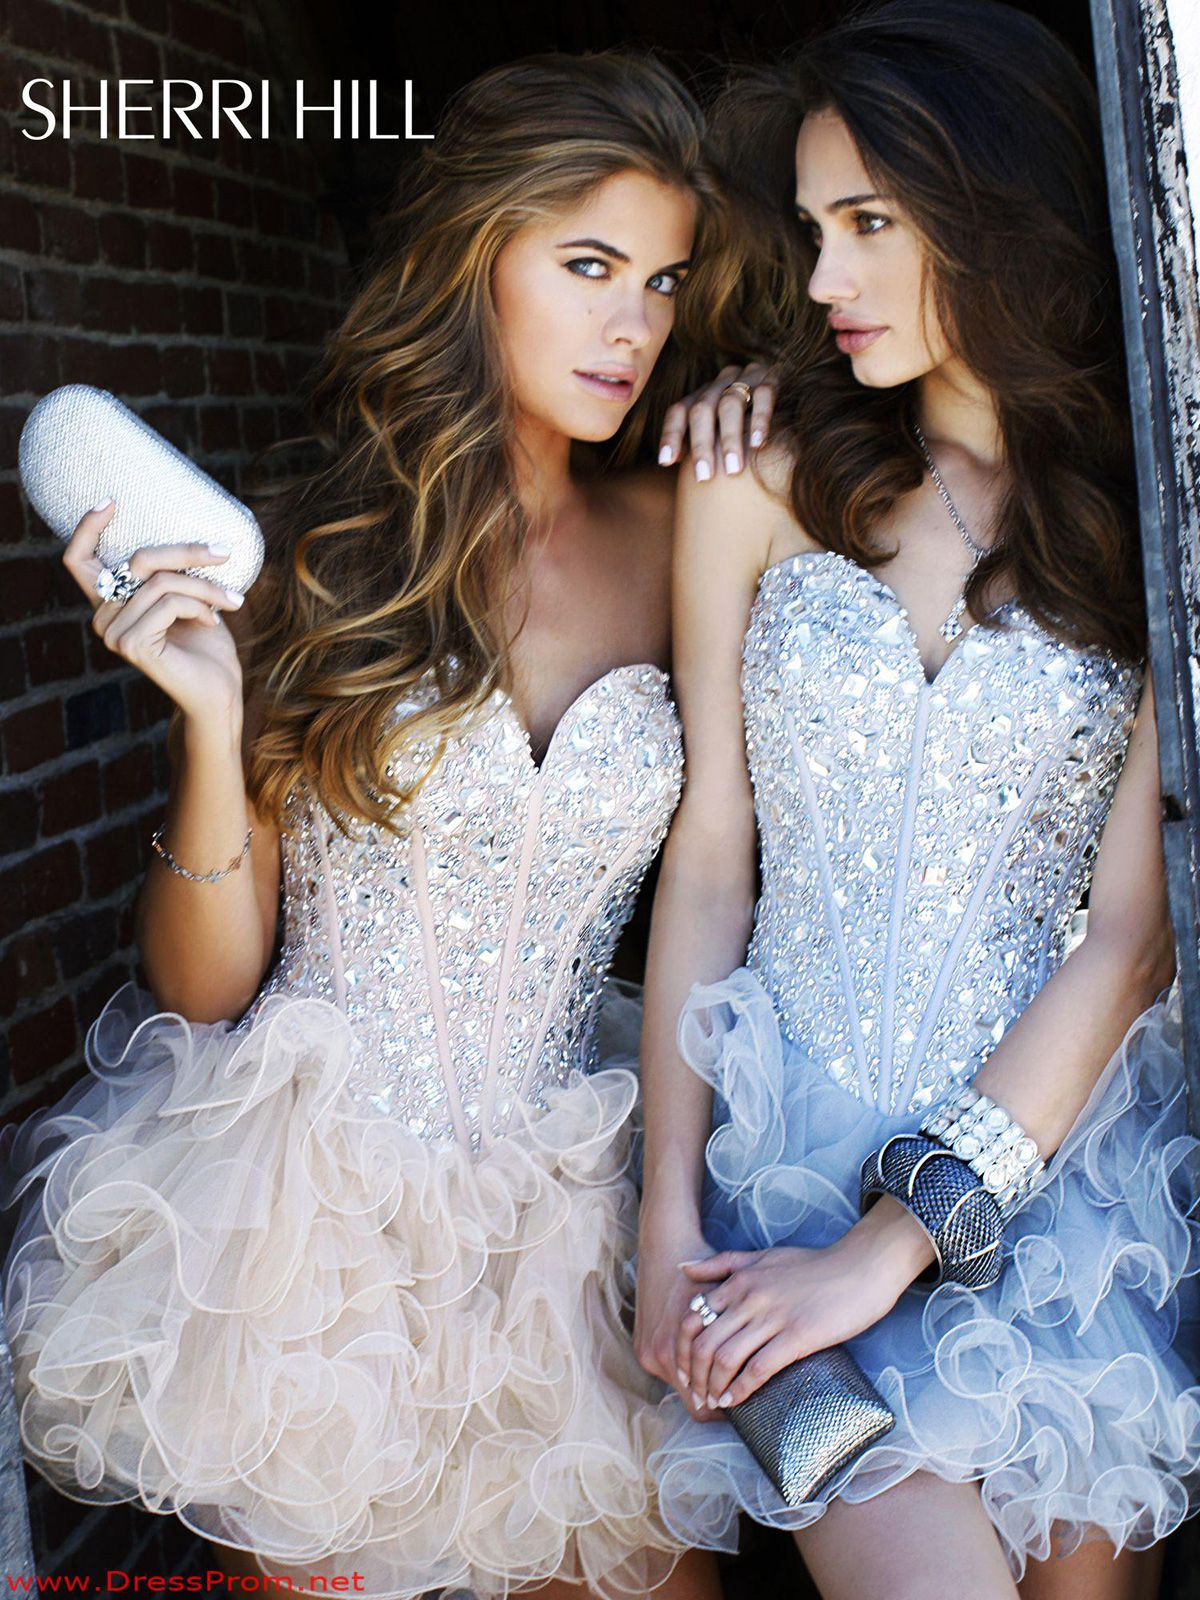 Get the edgy princess look in this sherri hill prom dress this